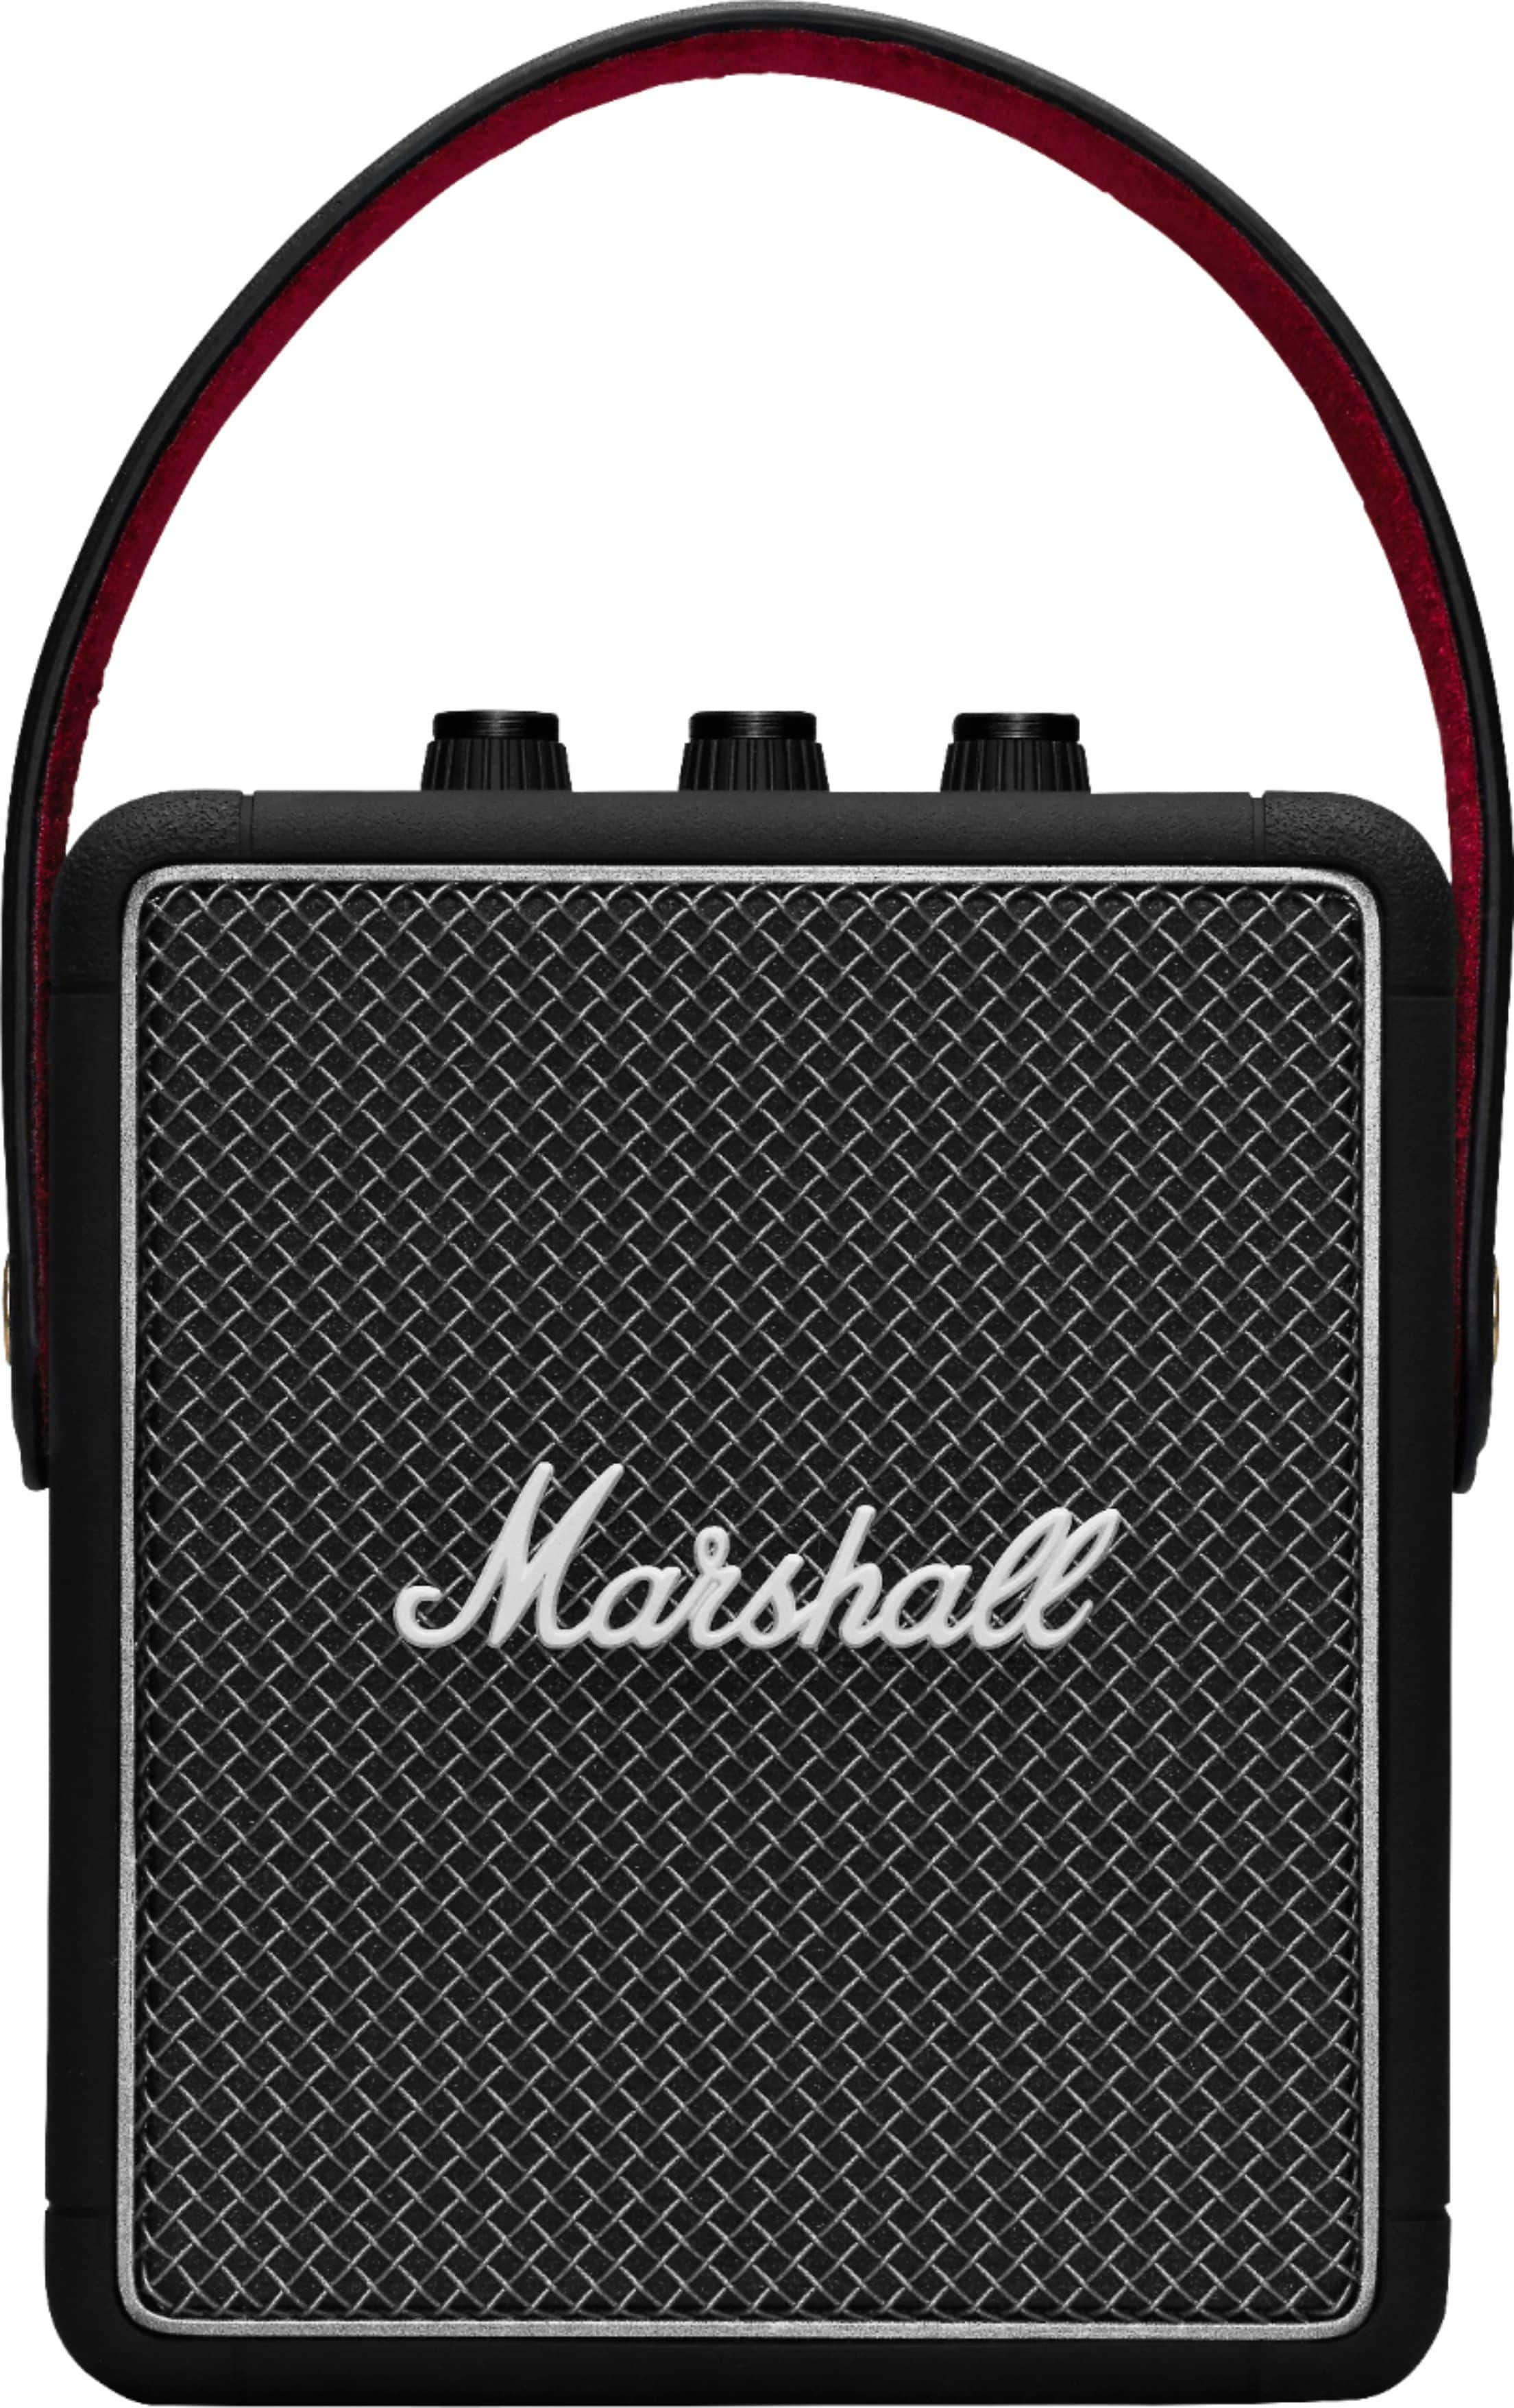 Marshall - Stockwell II Portable Bluetooth Speaker - Black $129.99